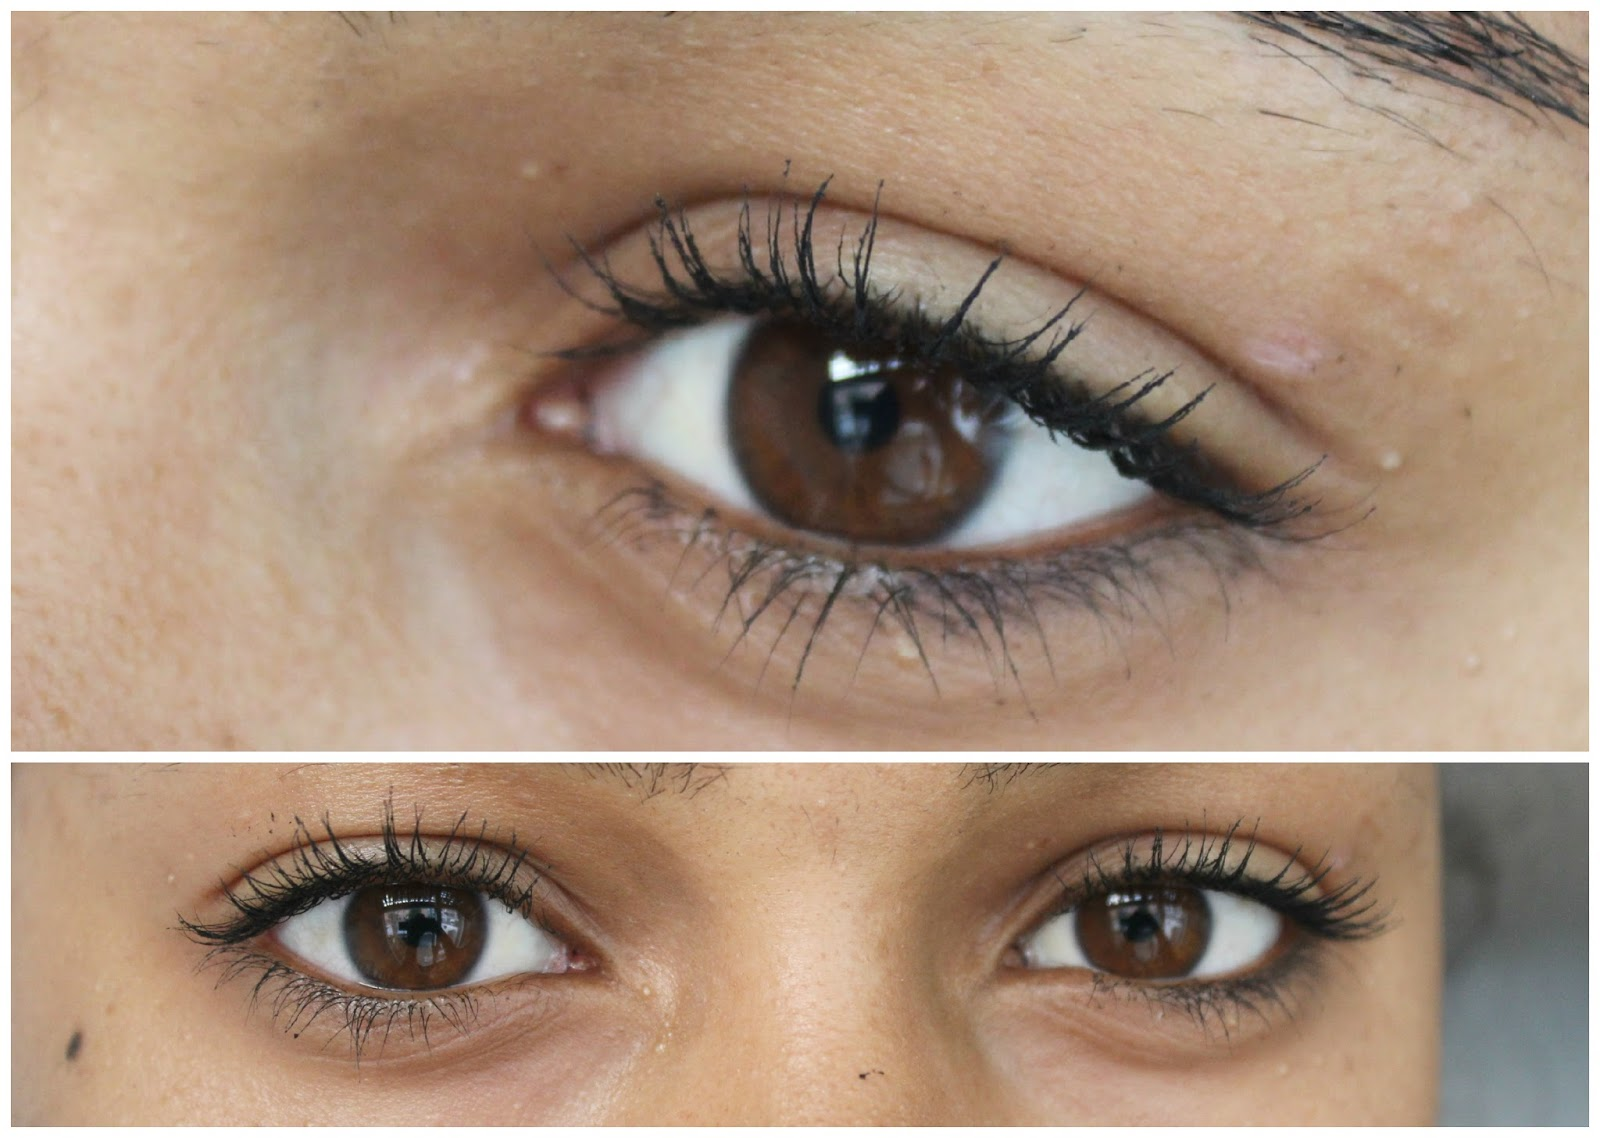 Essence Volumen Mascara Vergleiche Essence Mascara Test